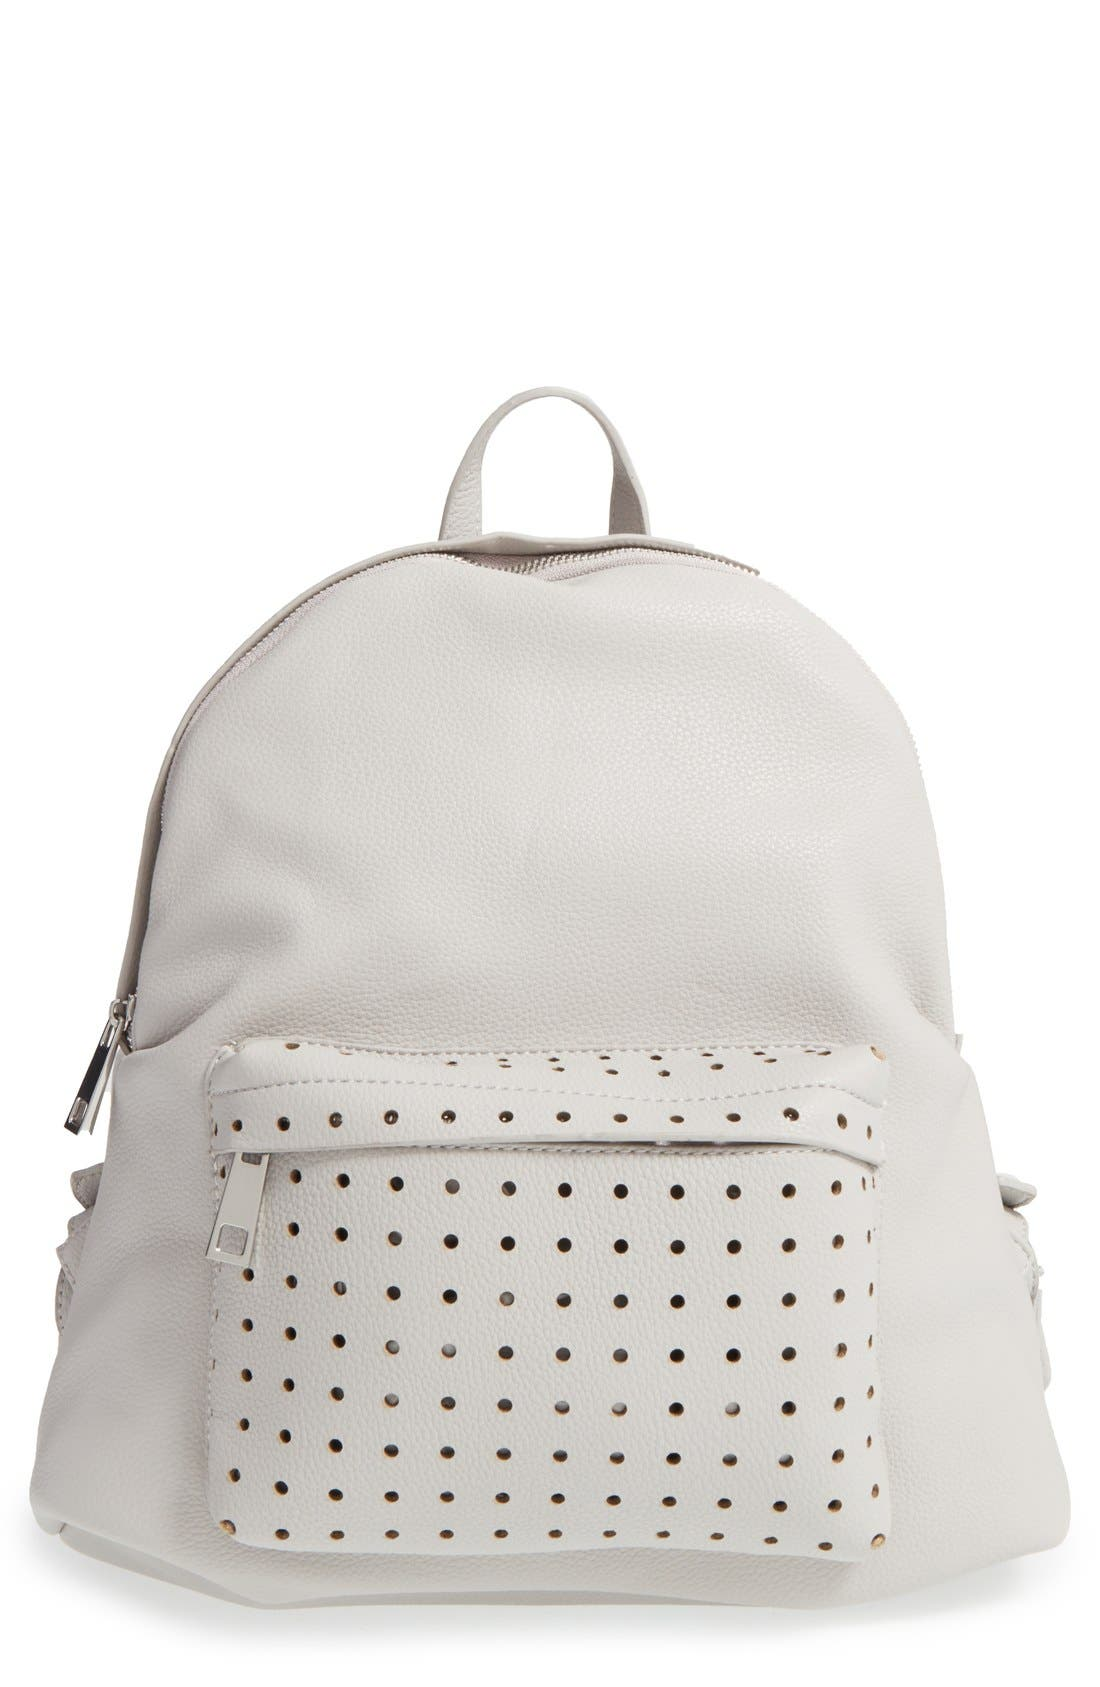 Alternate Image 1 Selected - Street Level Perforated Faux Leather Backpack